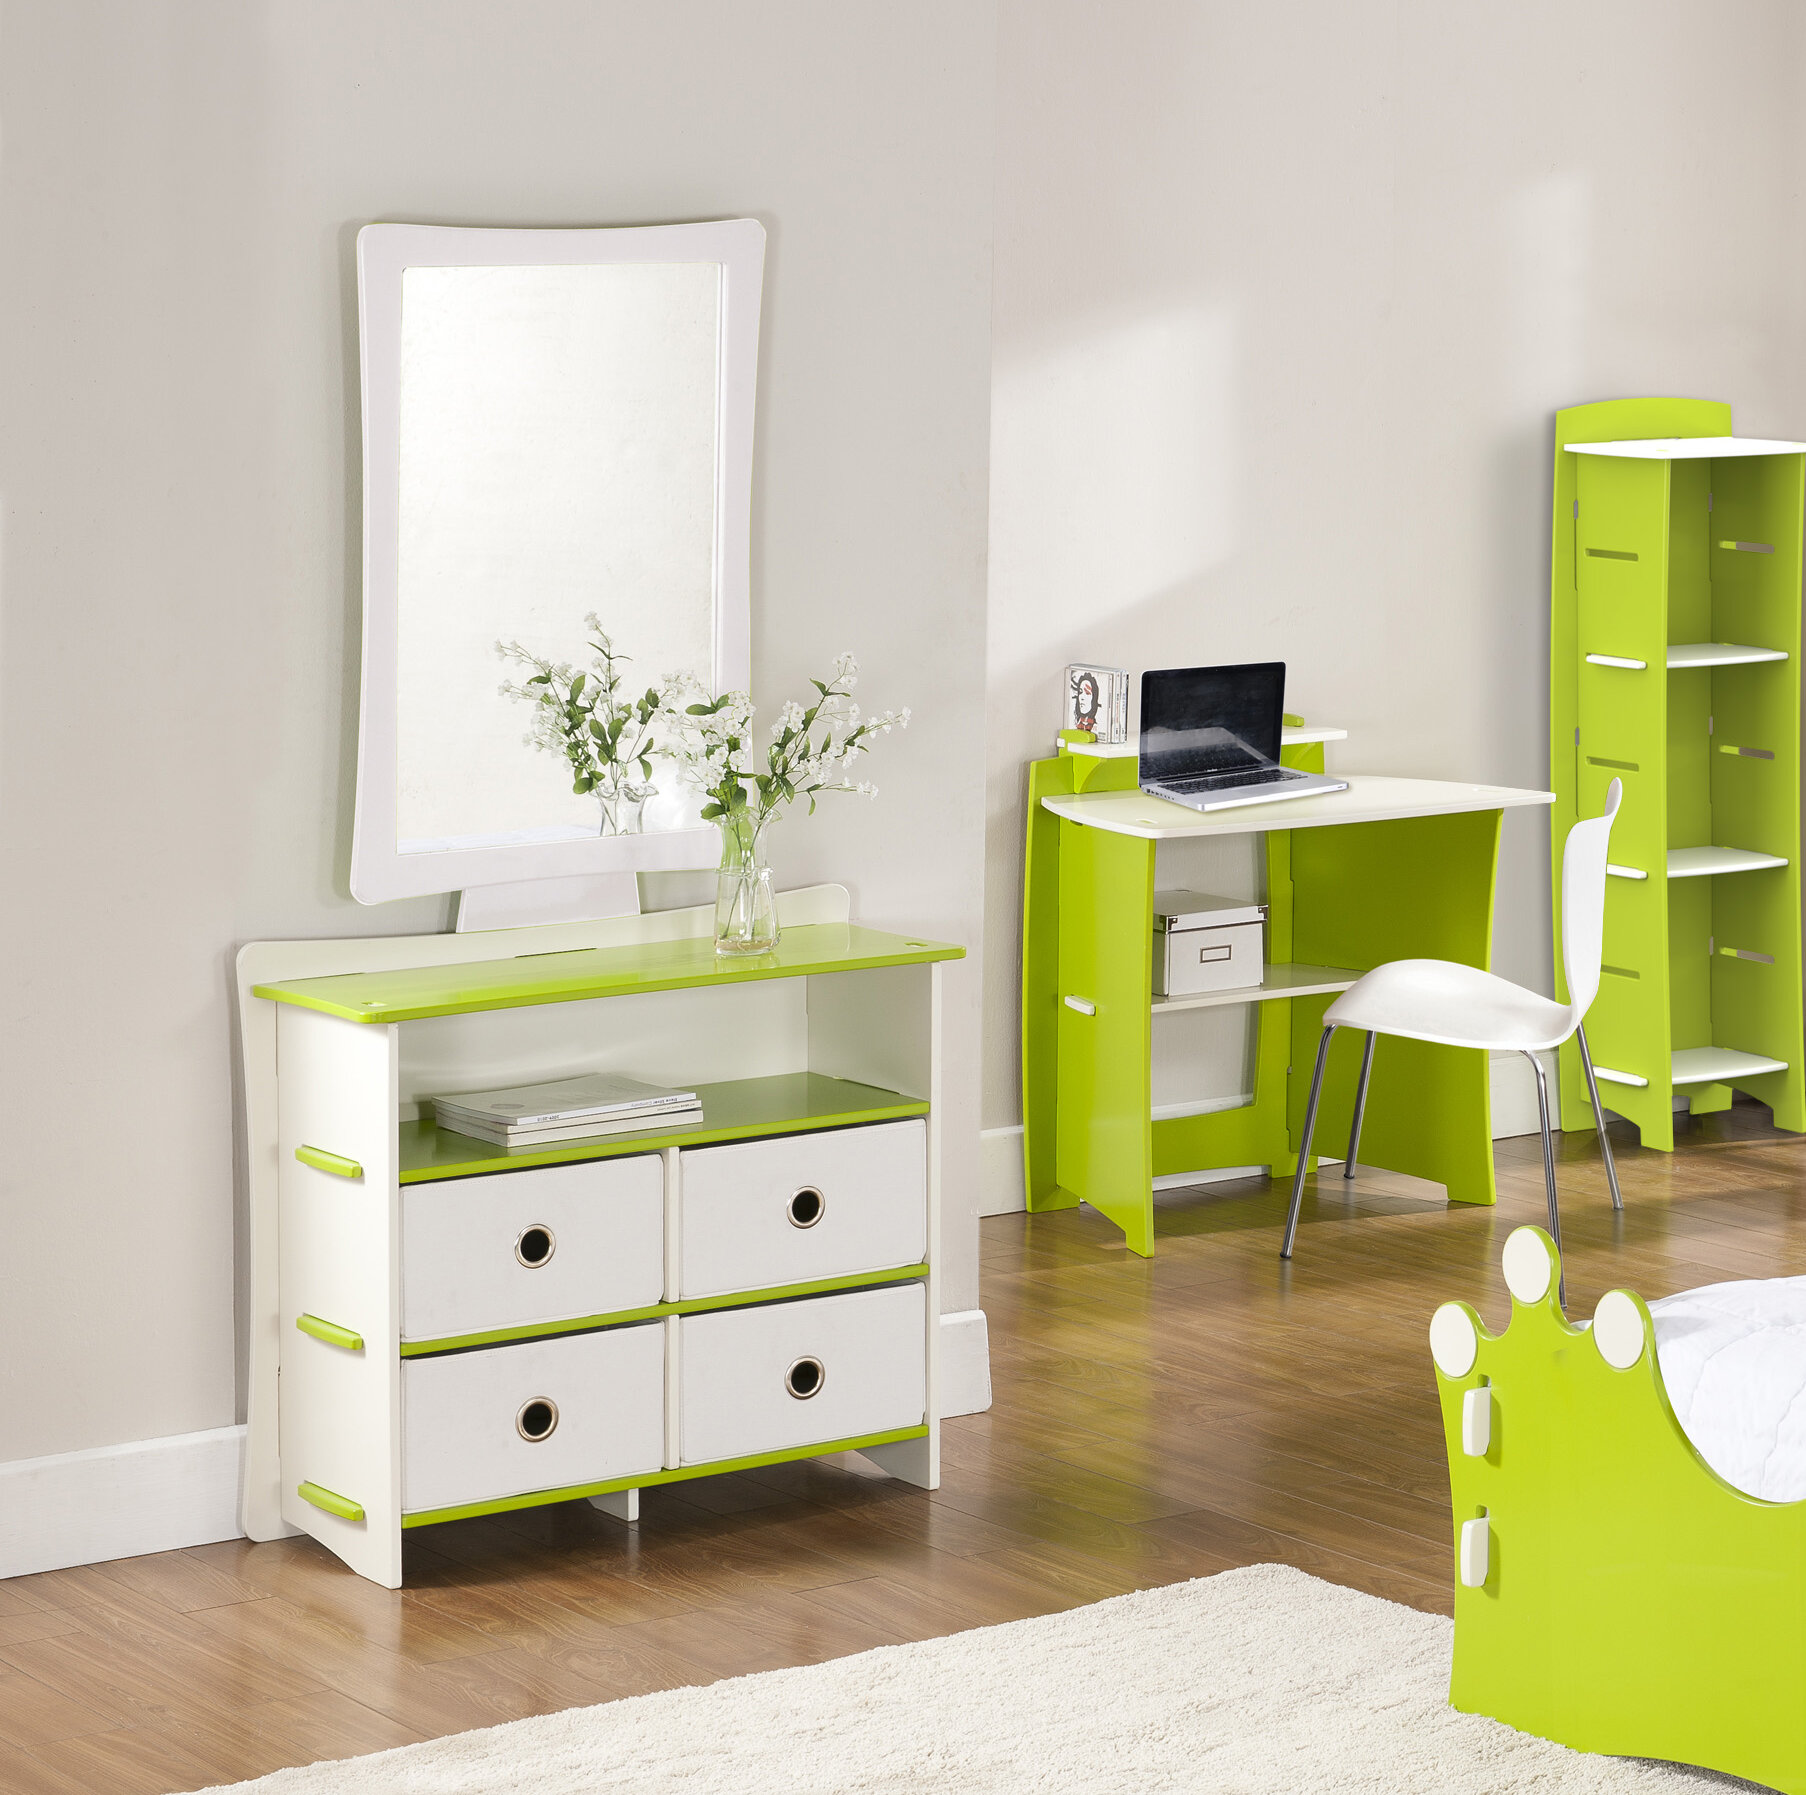 Legare Furniture Legare Kids 4 Drawer Double Dresser with Mirror